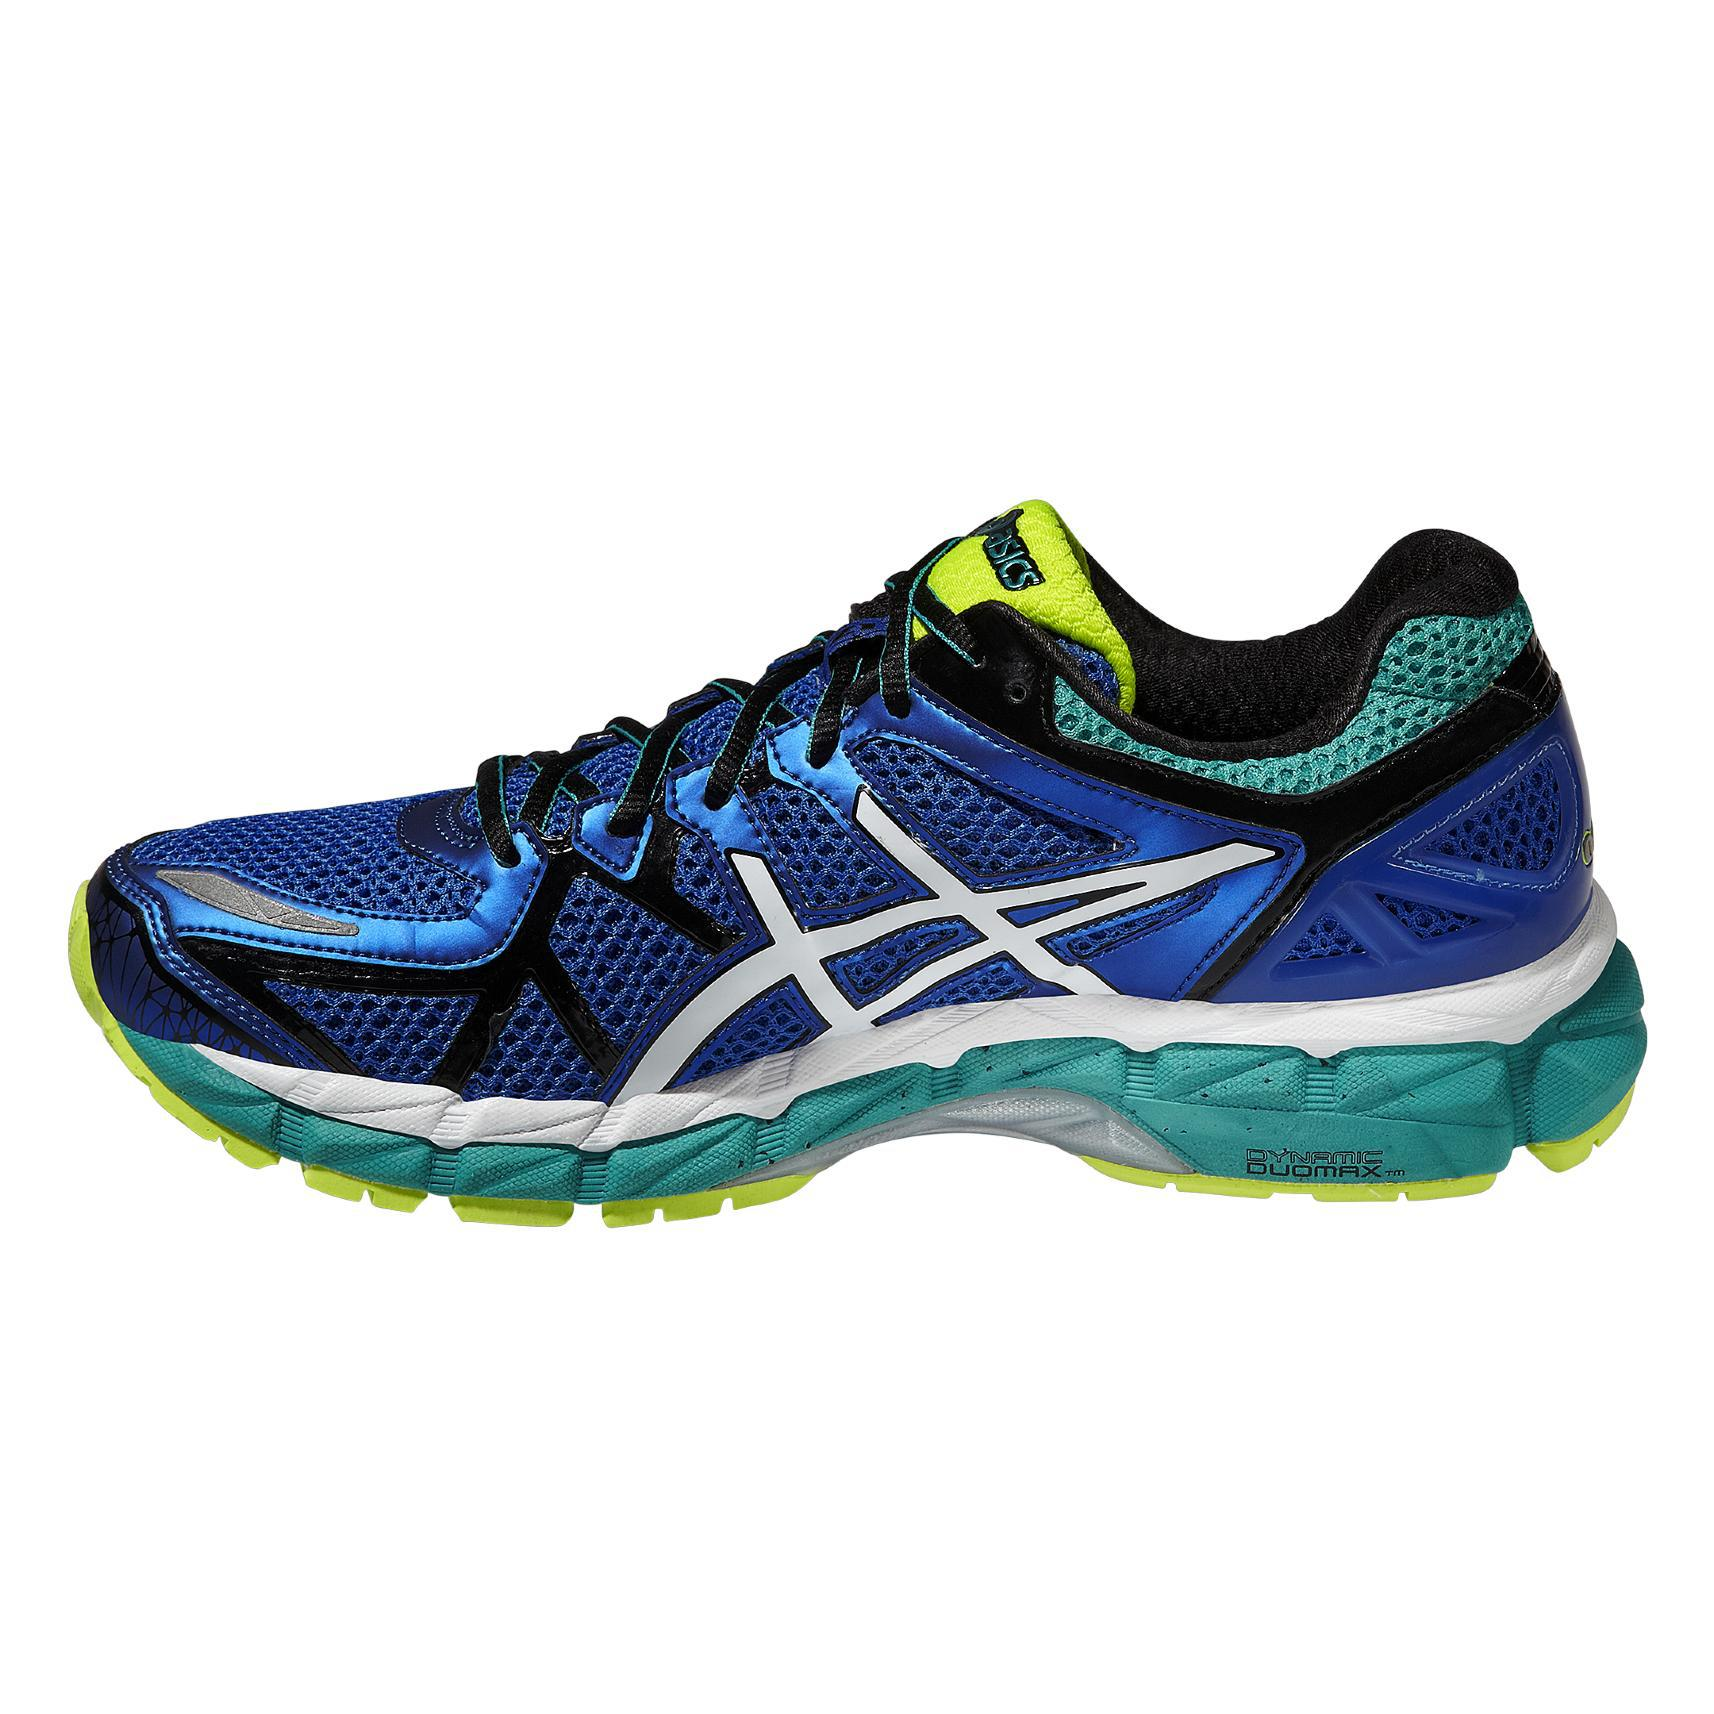 asics mens gel kayano 21 running shoes blue white. Black Bedroom Furniture Sets. Home Design Ideas